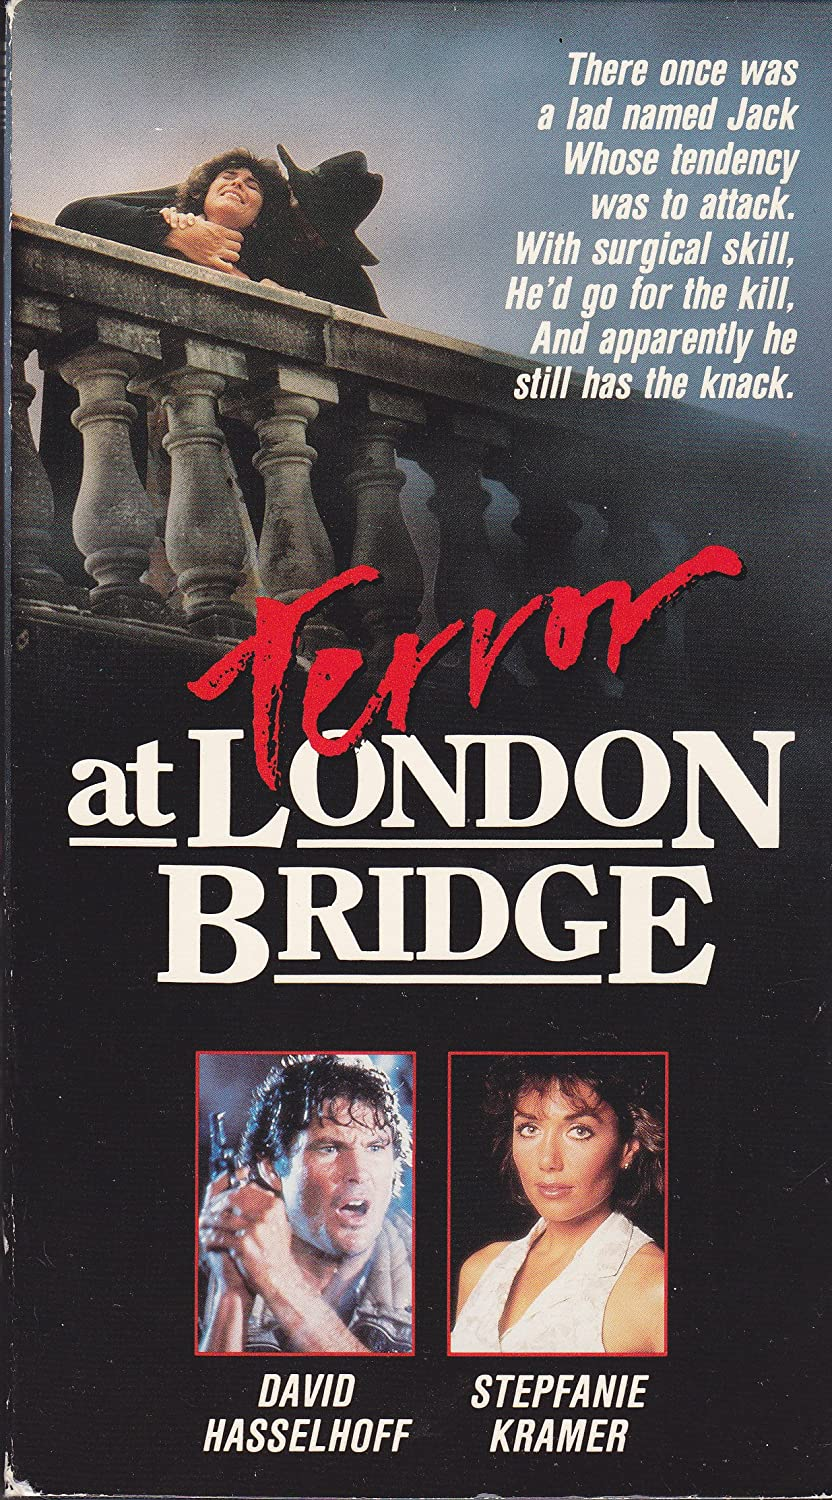 Terror at London Bridge Starring David Hasselhoff, Adrienne Barbeau, with Stepfanie Kramer